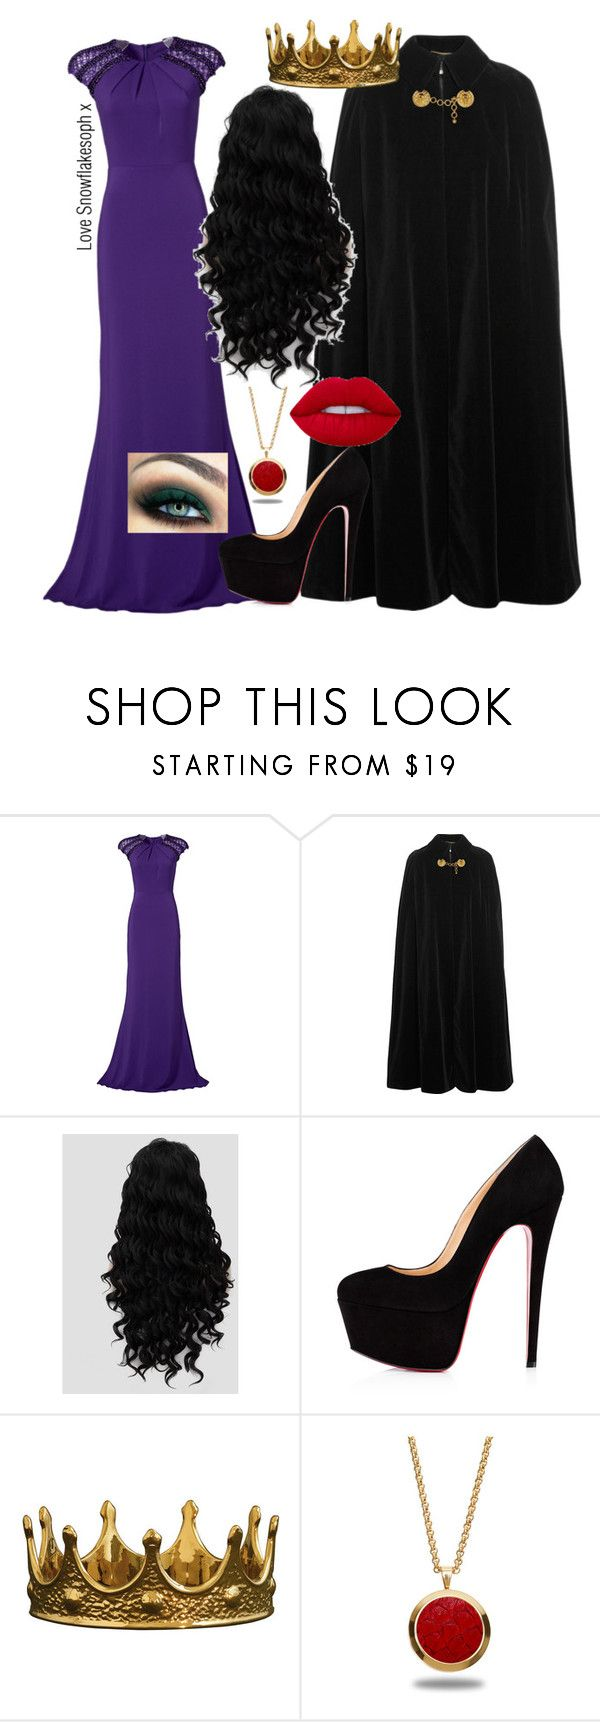 """""""The Evil Queen"""" by snowflakesoph ❤ liked on Polyvore featuring Badgley Mischka, Yves Saint Laurent, Marlin Birna and Lime Crime"""